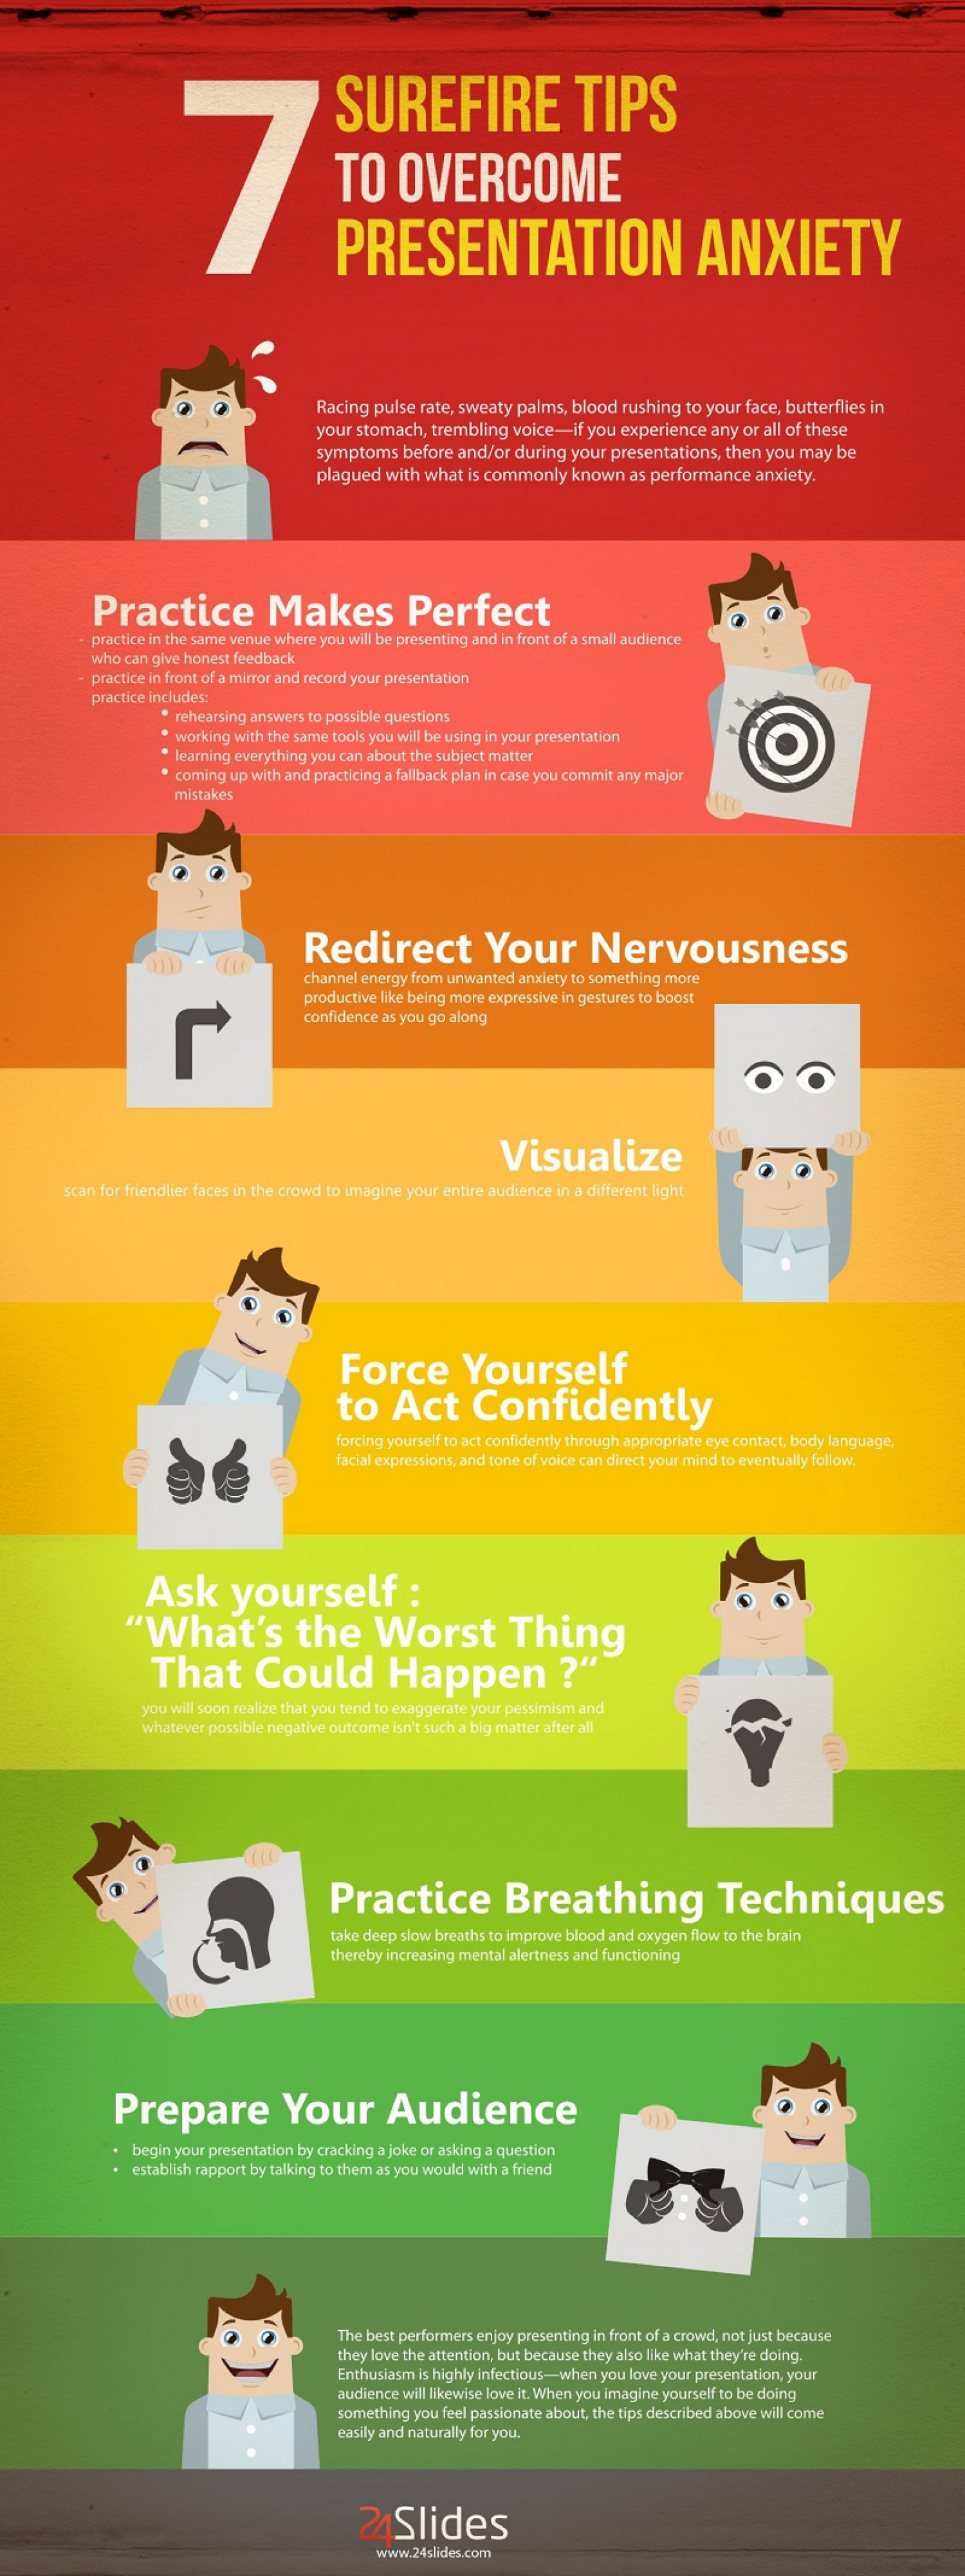 7 Surefire Tips to Overcome Presentation Anxiety | Visual.ly